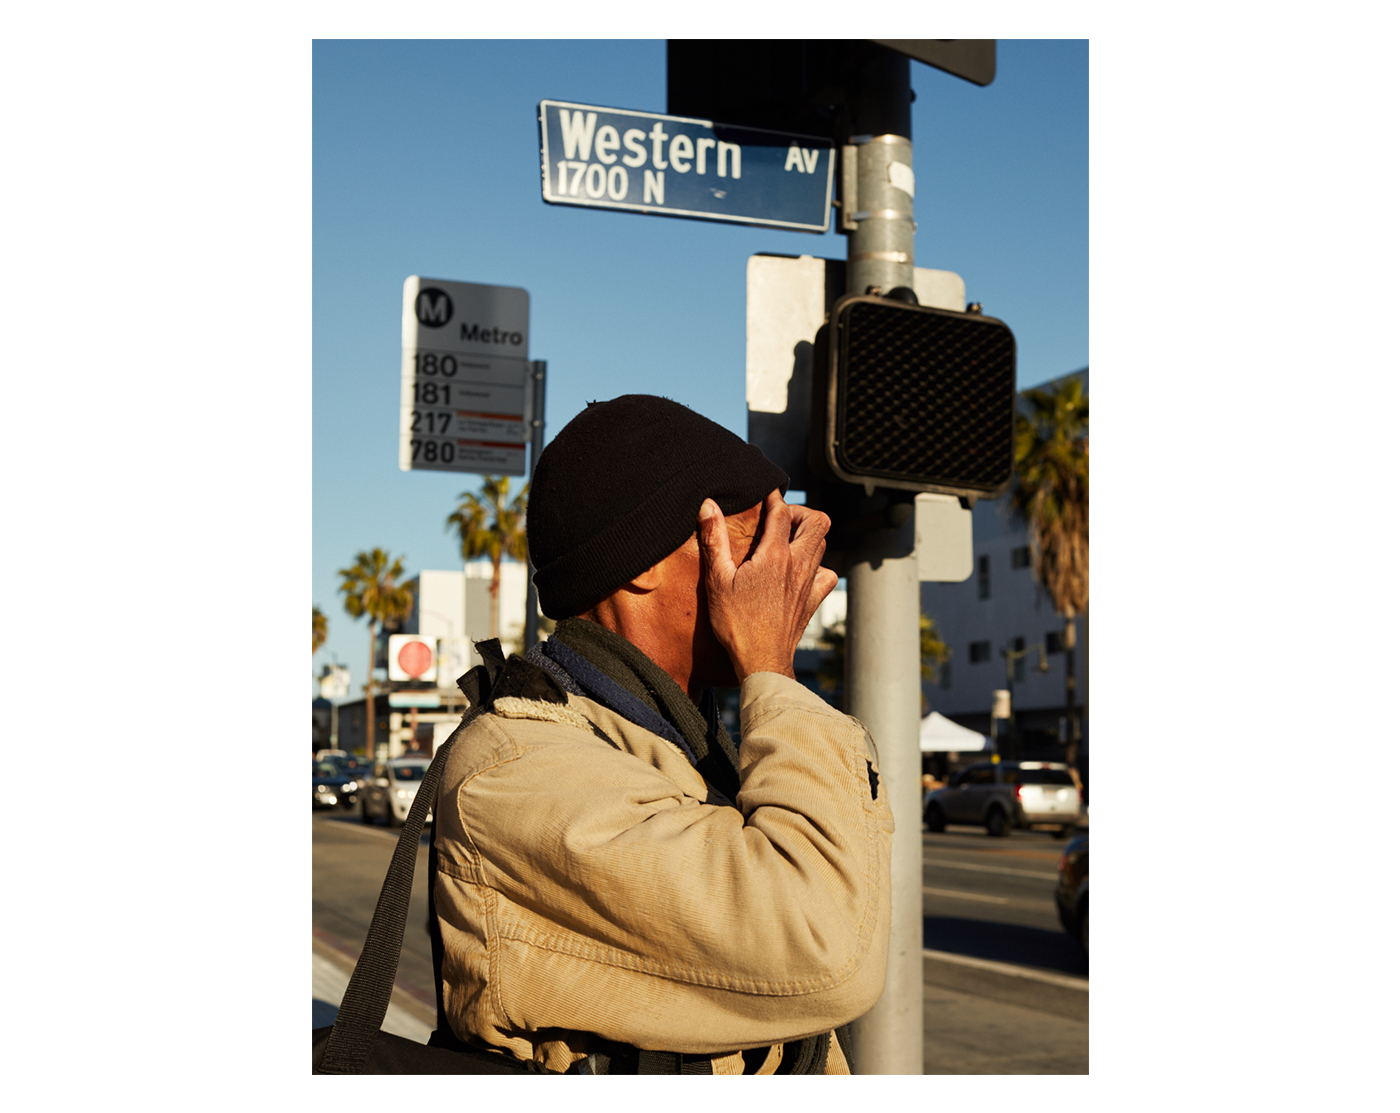 Brad Torchia is a Los Angeles based photographer.